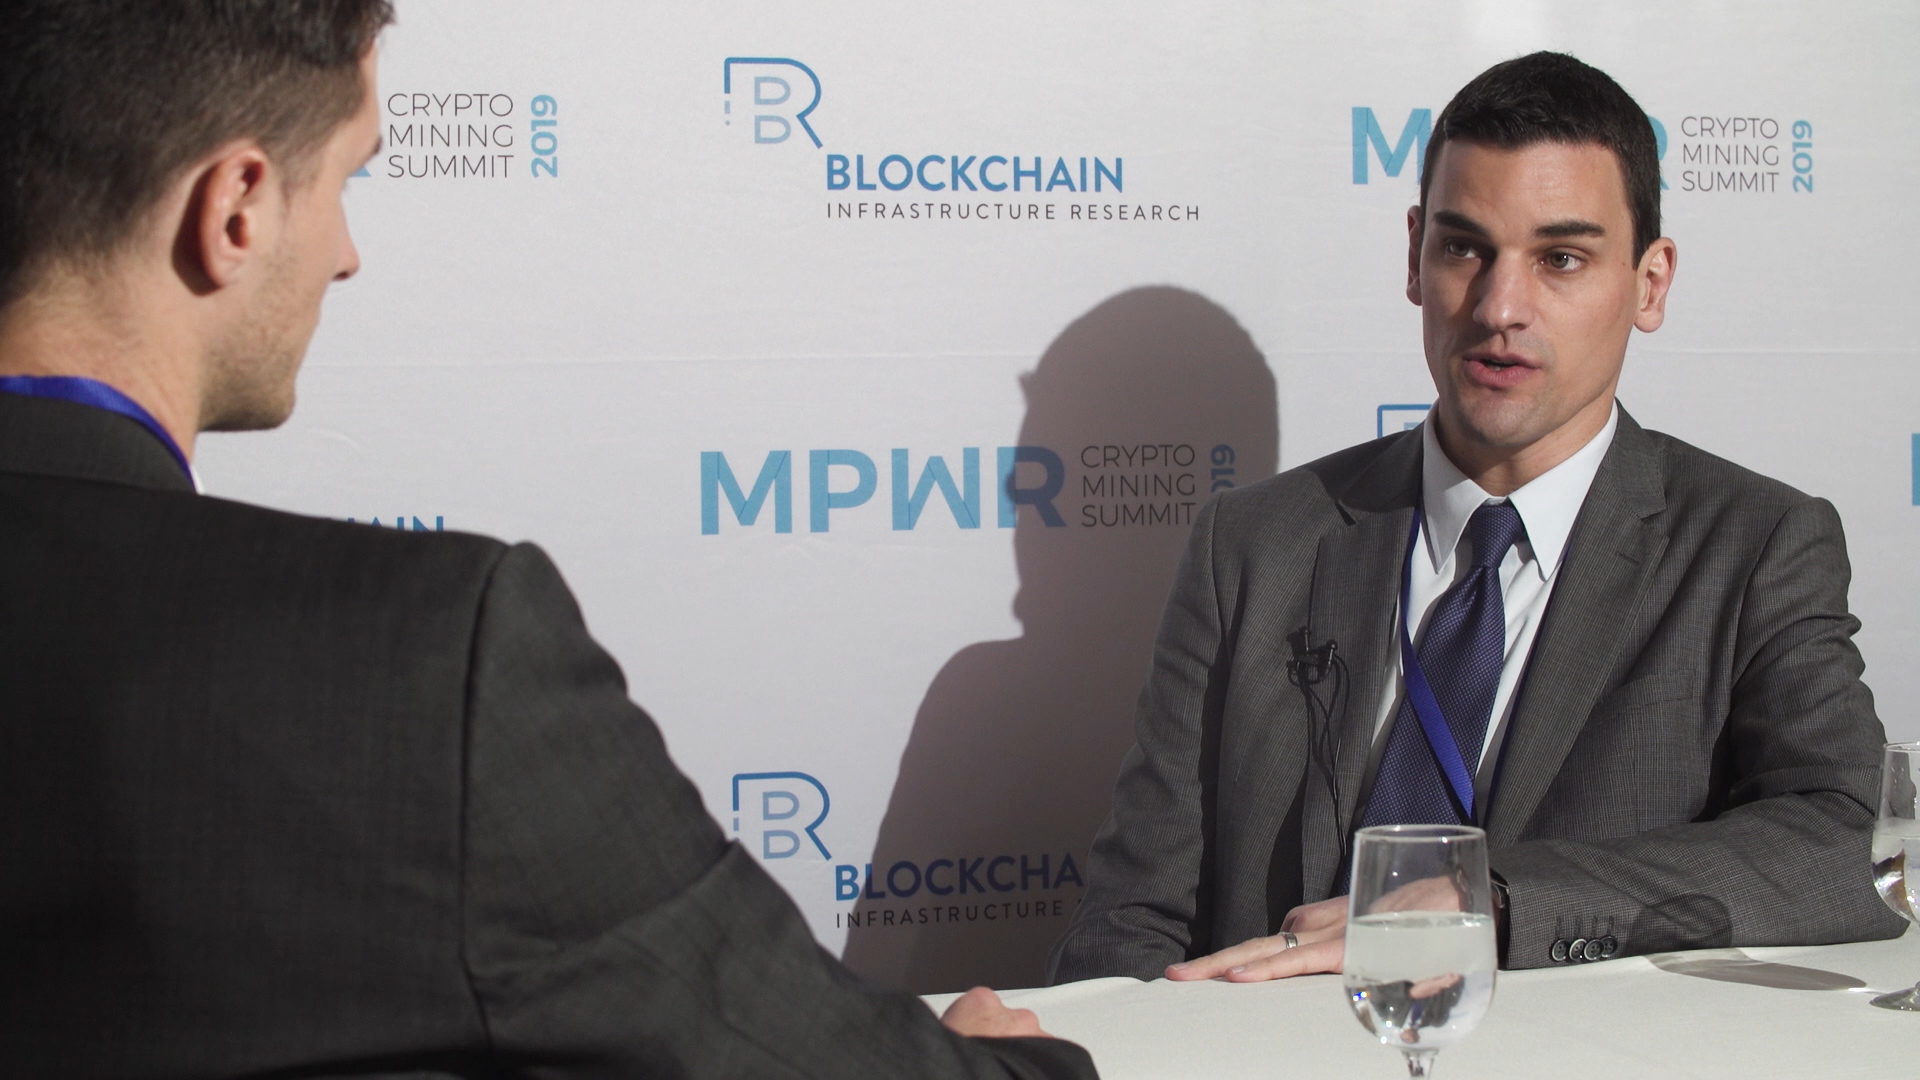 I sit down with Wes Fulford at MPWR 2019 to learn about his Bitcoin Mining operation in Quebec.